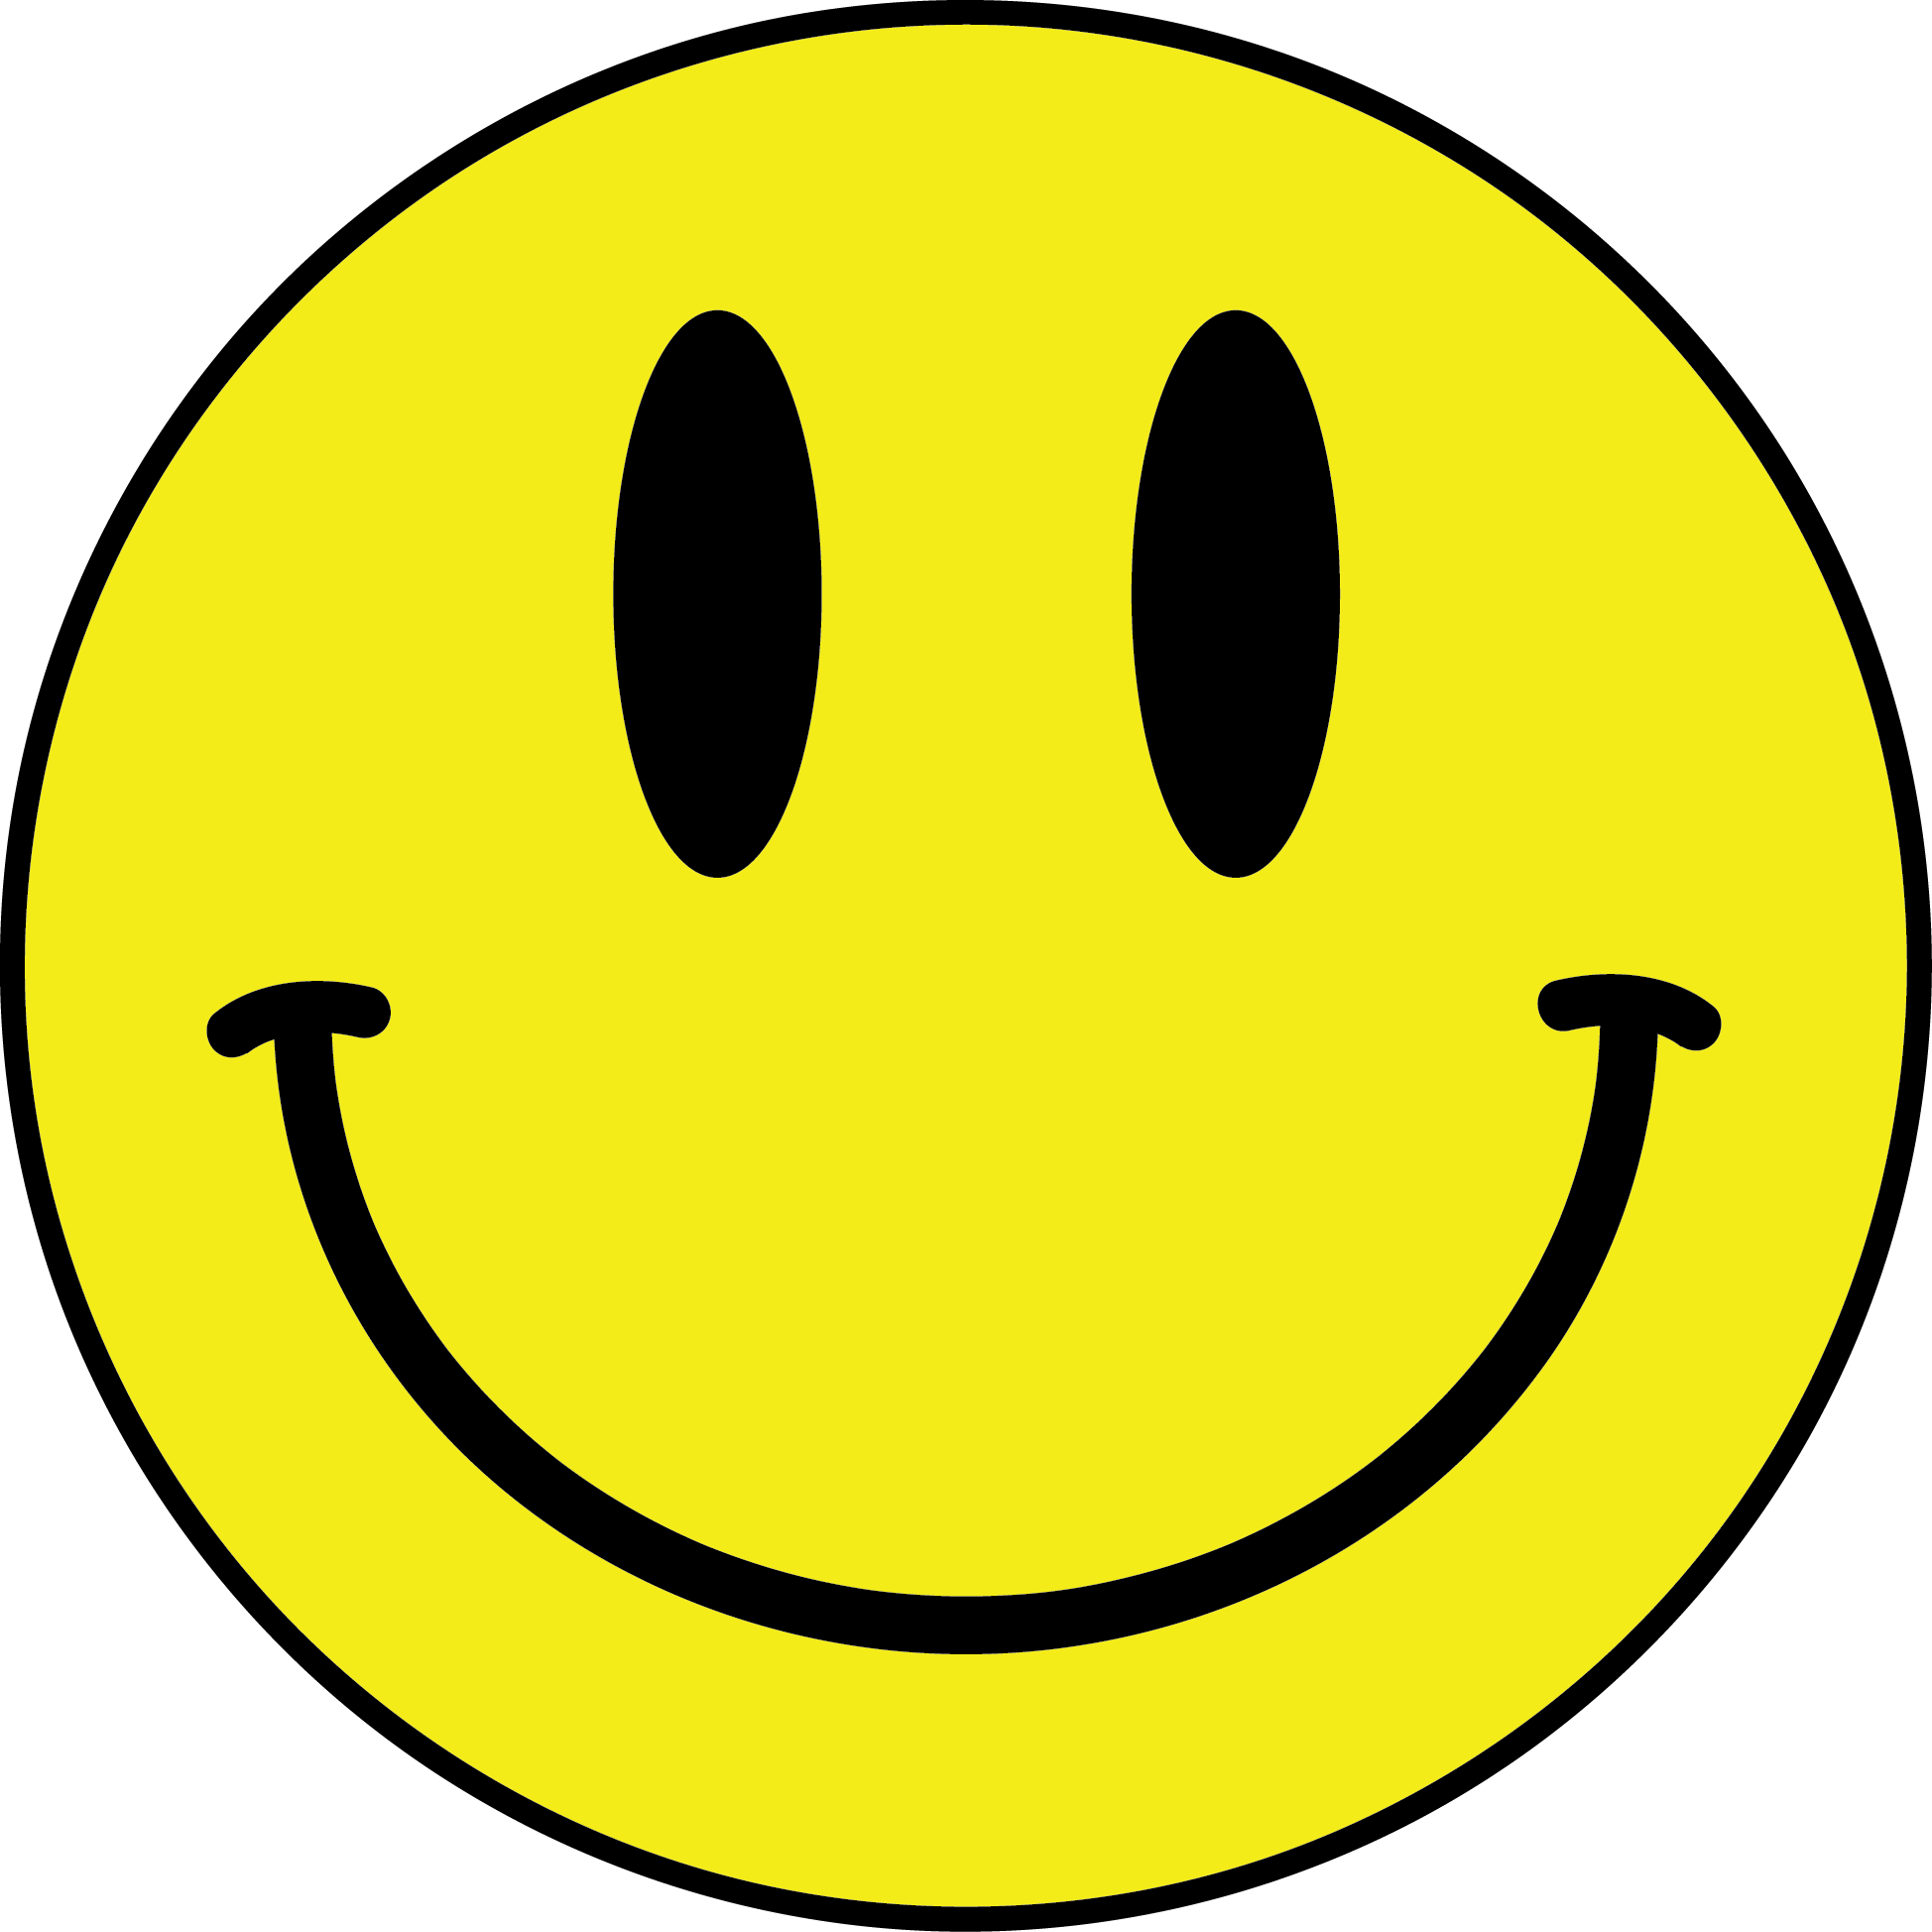 Smiley clipart. Acid clipartly comclipartly com